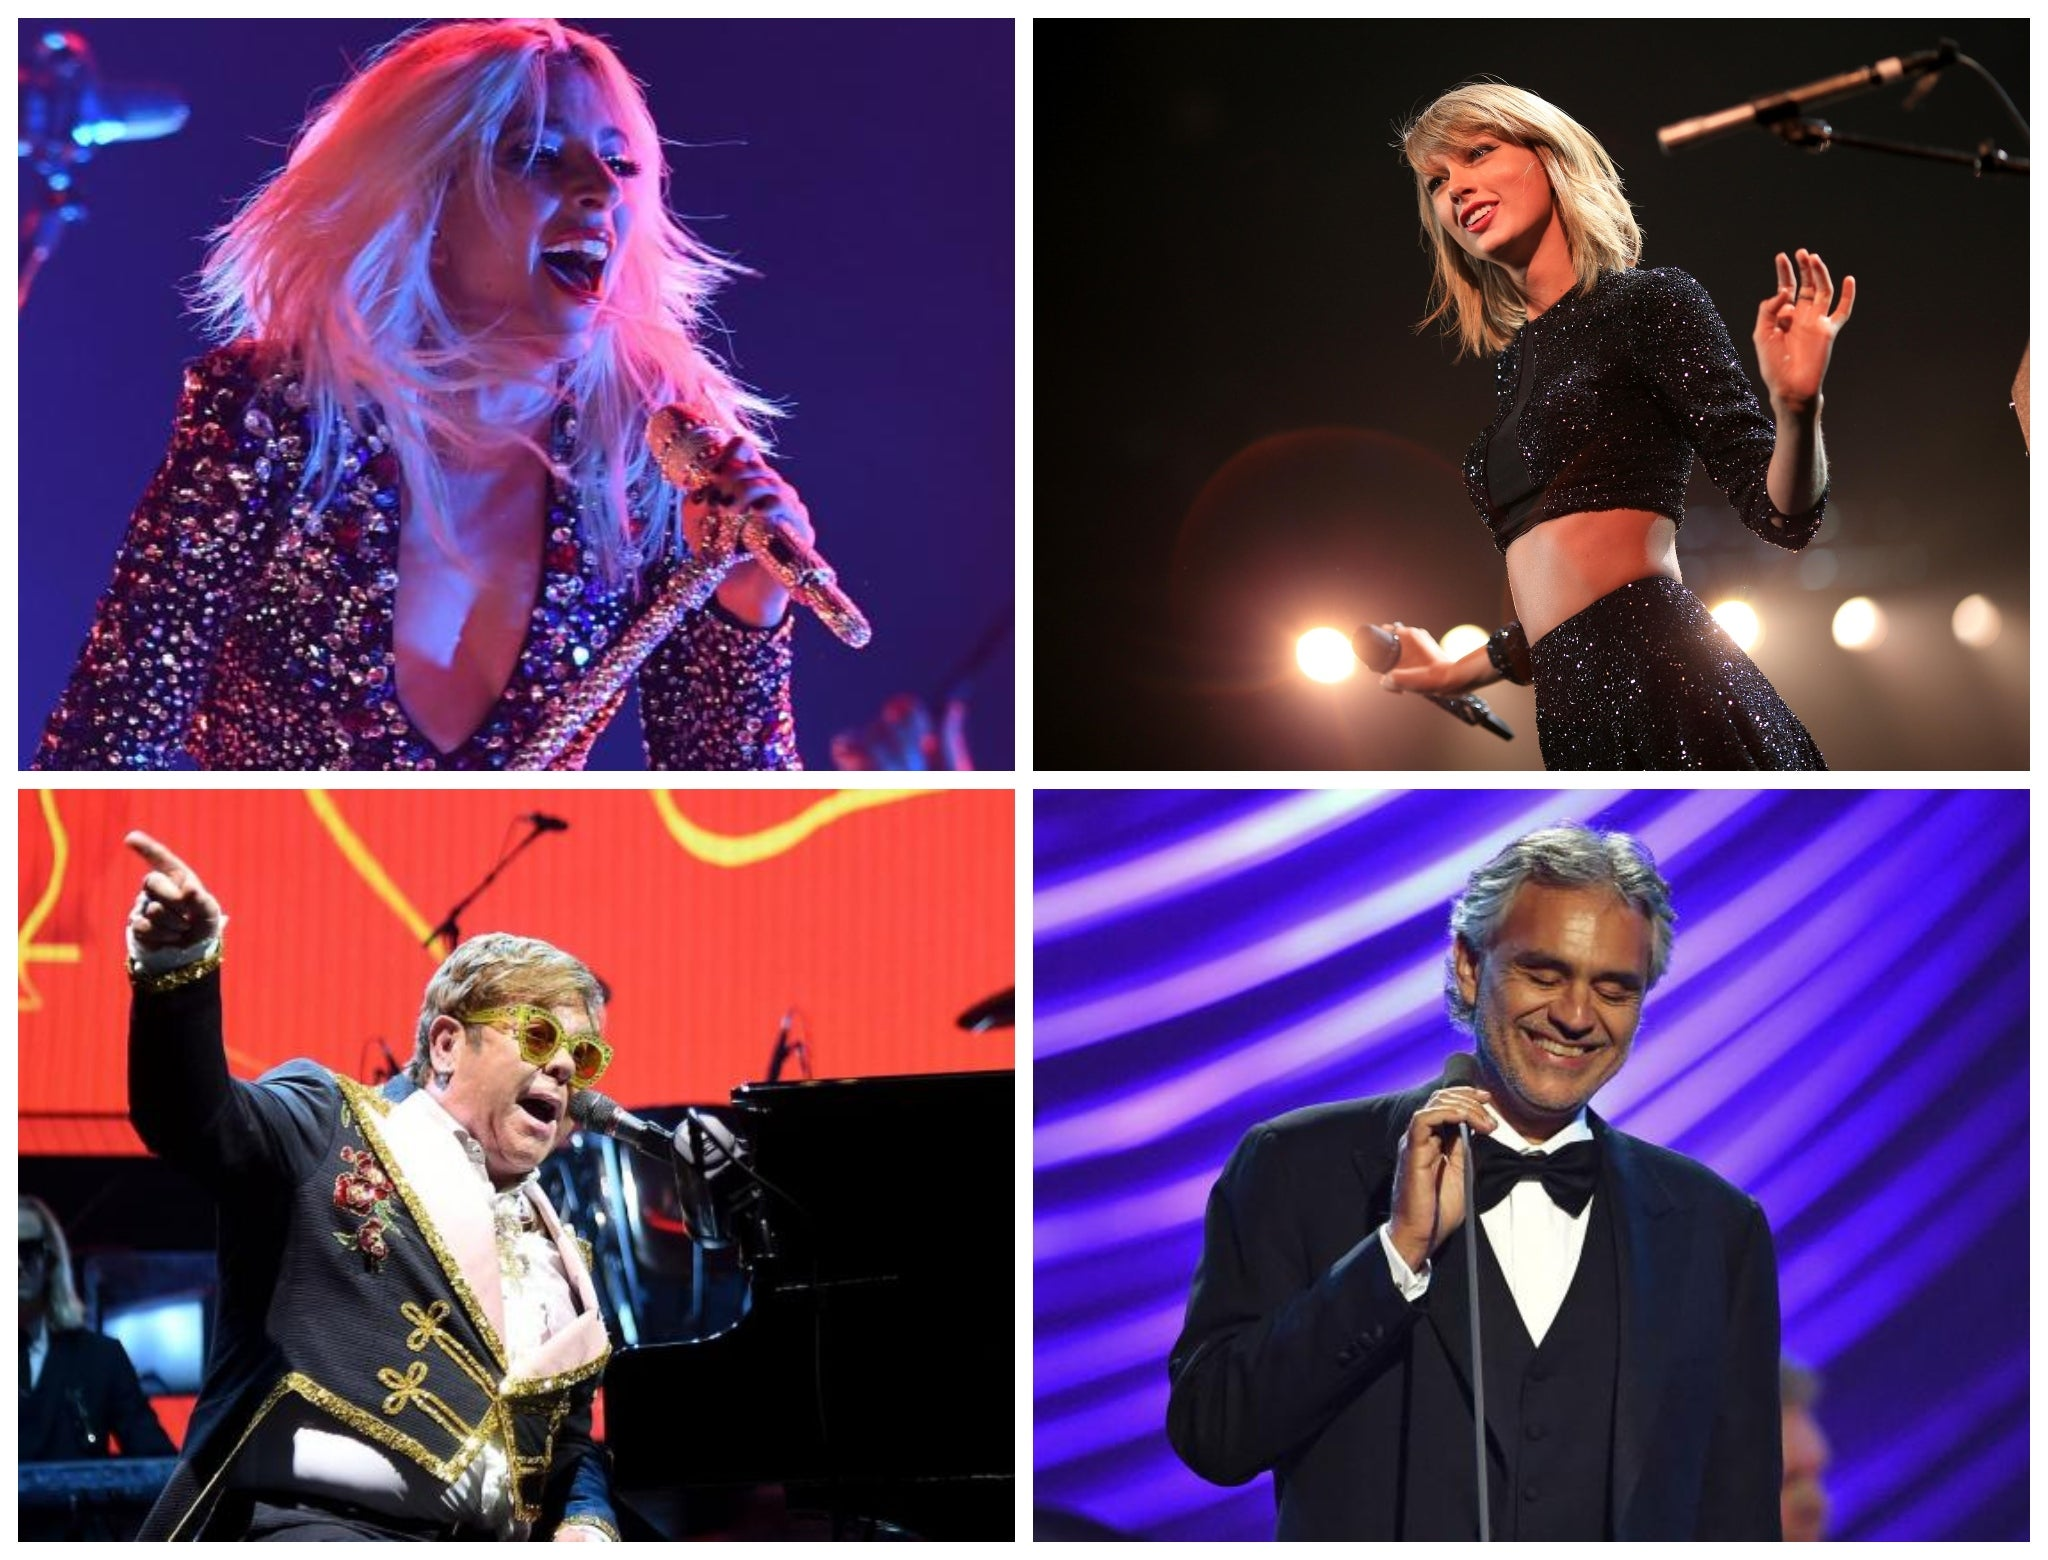 One World: Full list of scheduled performances, from Lady Gaga to Taylor Swift and Elton John thumbnail